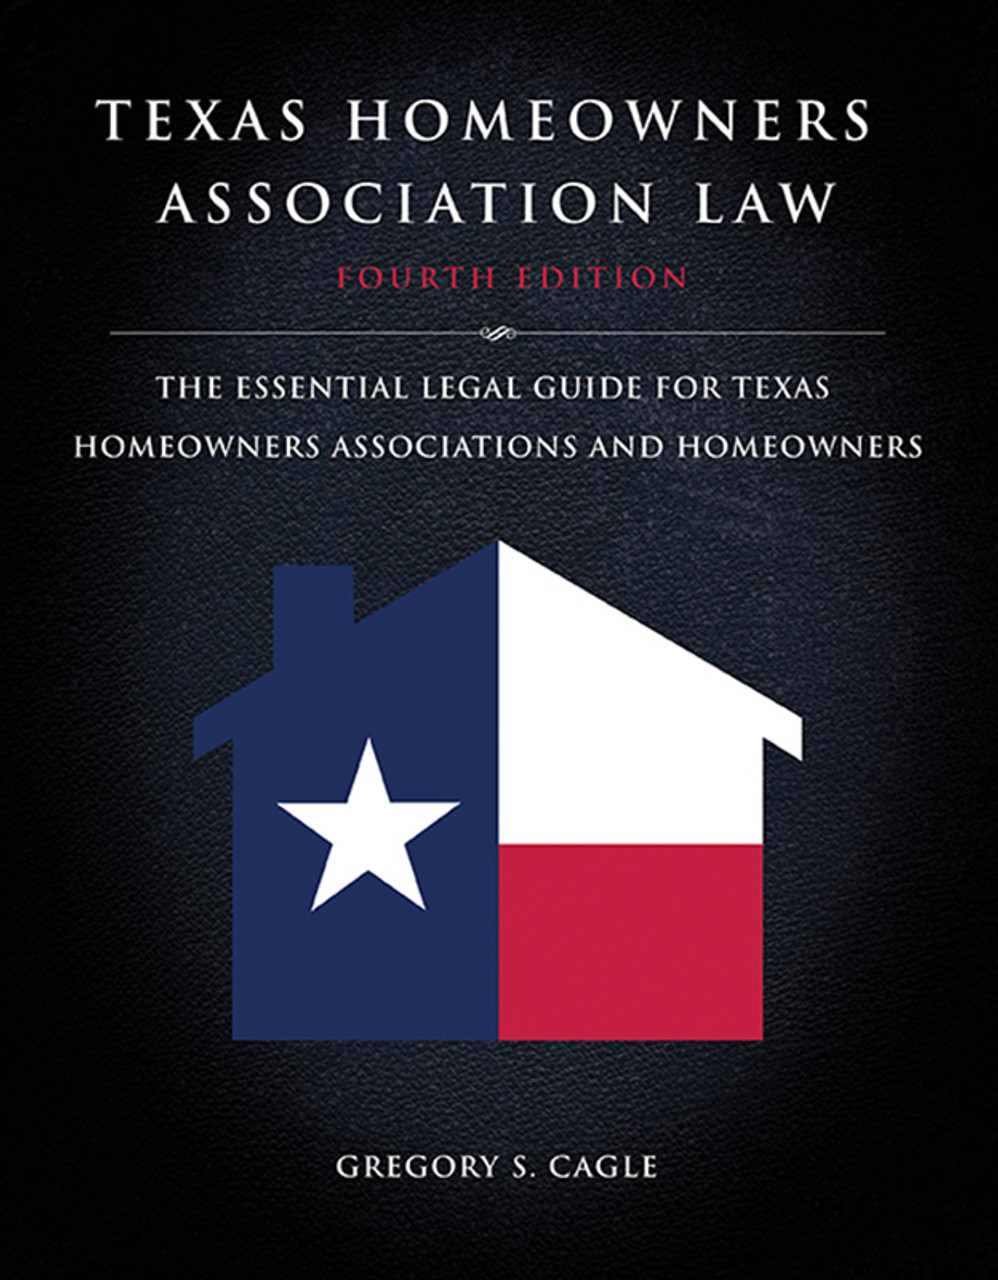 Texas Homeowners Association Law, Fourth Edition: The Essential Legal Guide for Texas Homeowners Associations and Homeowners